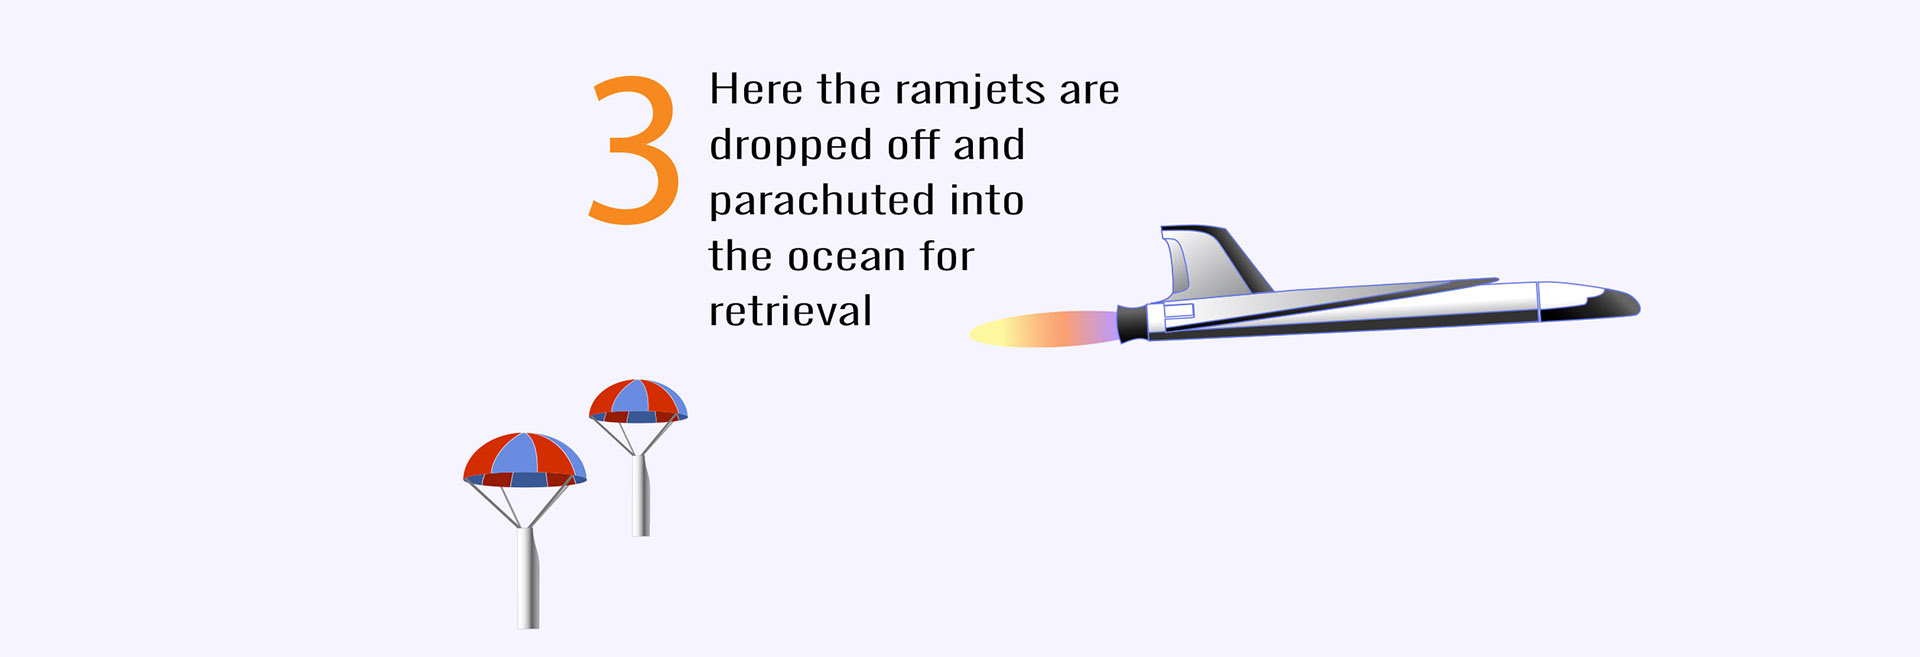 Stage 3 - ramjets jettisoned